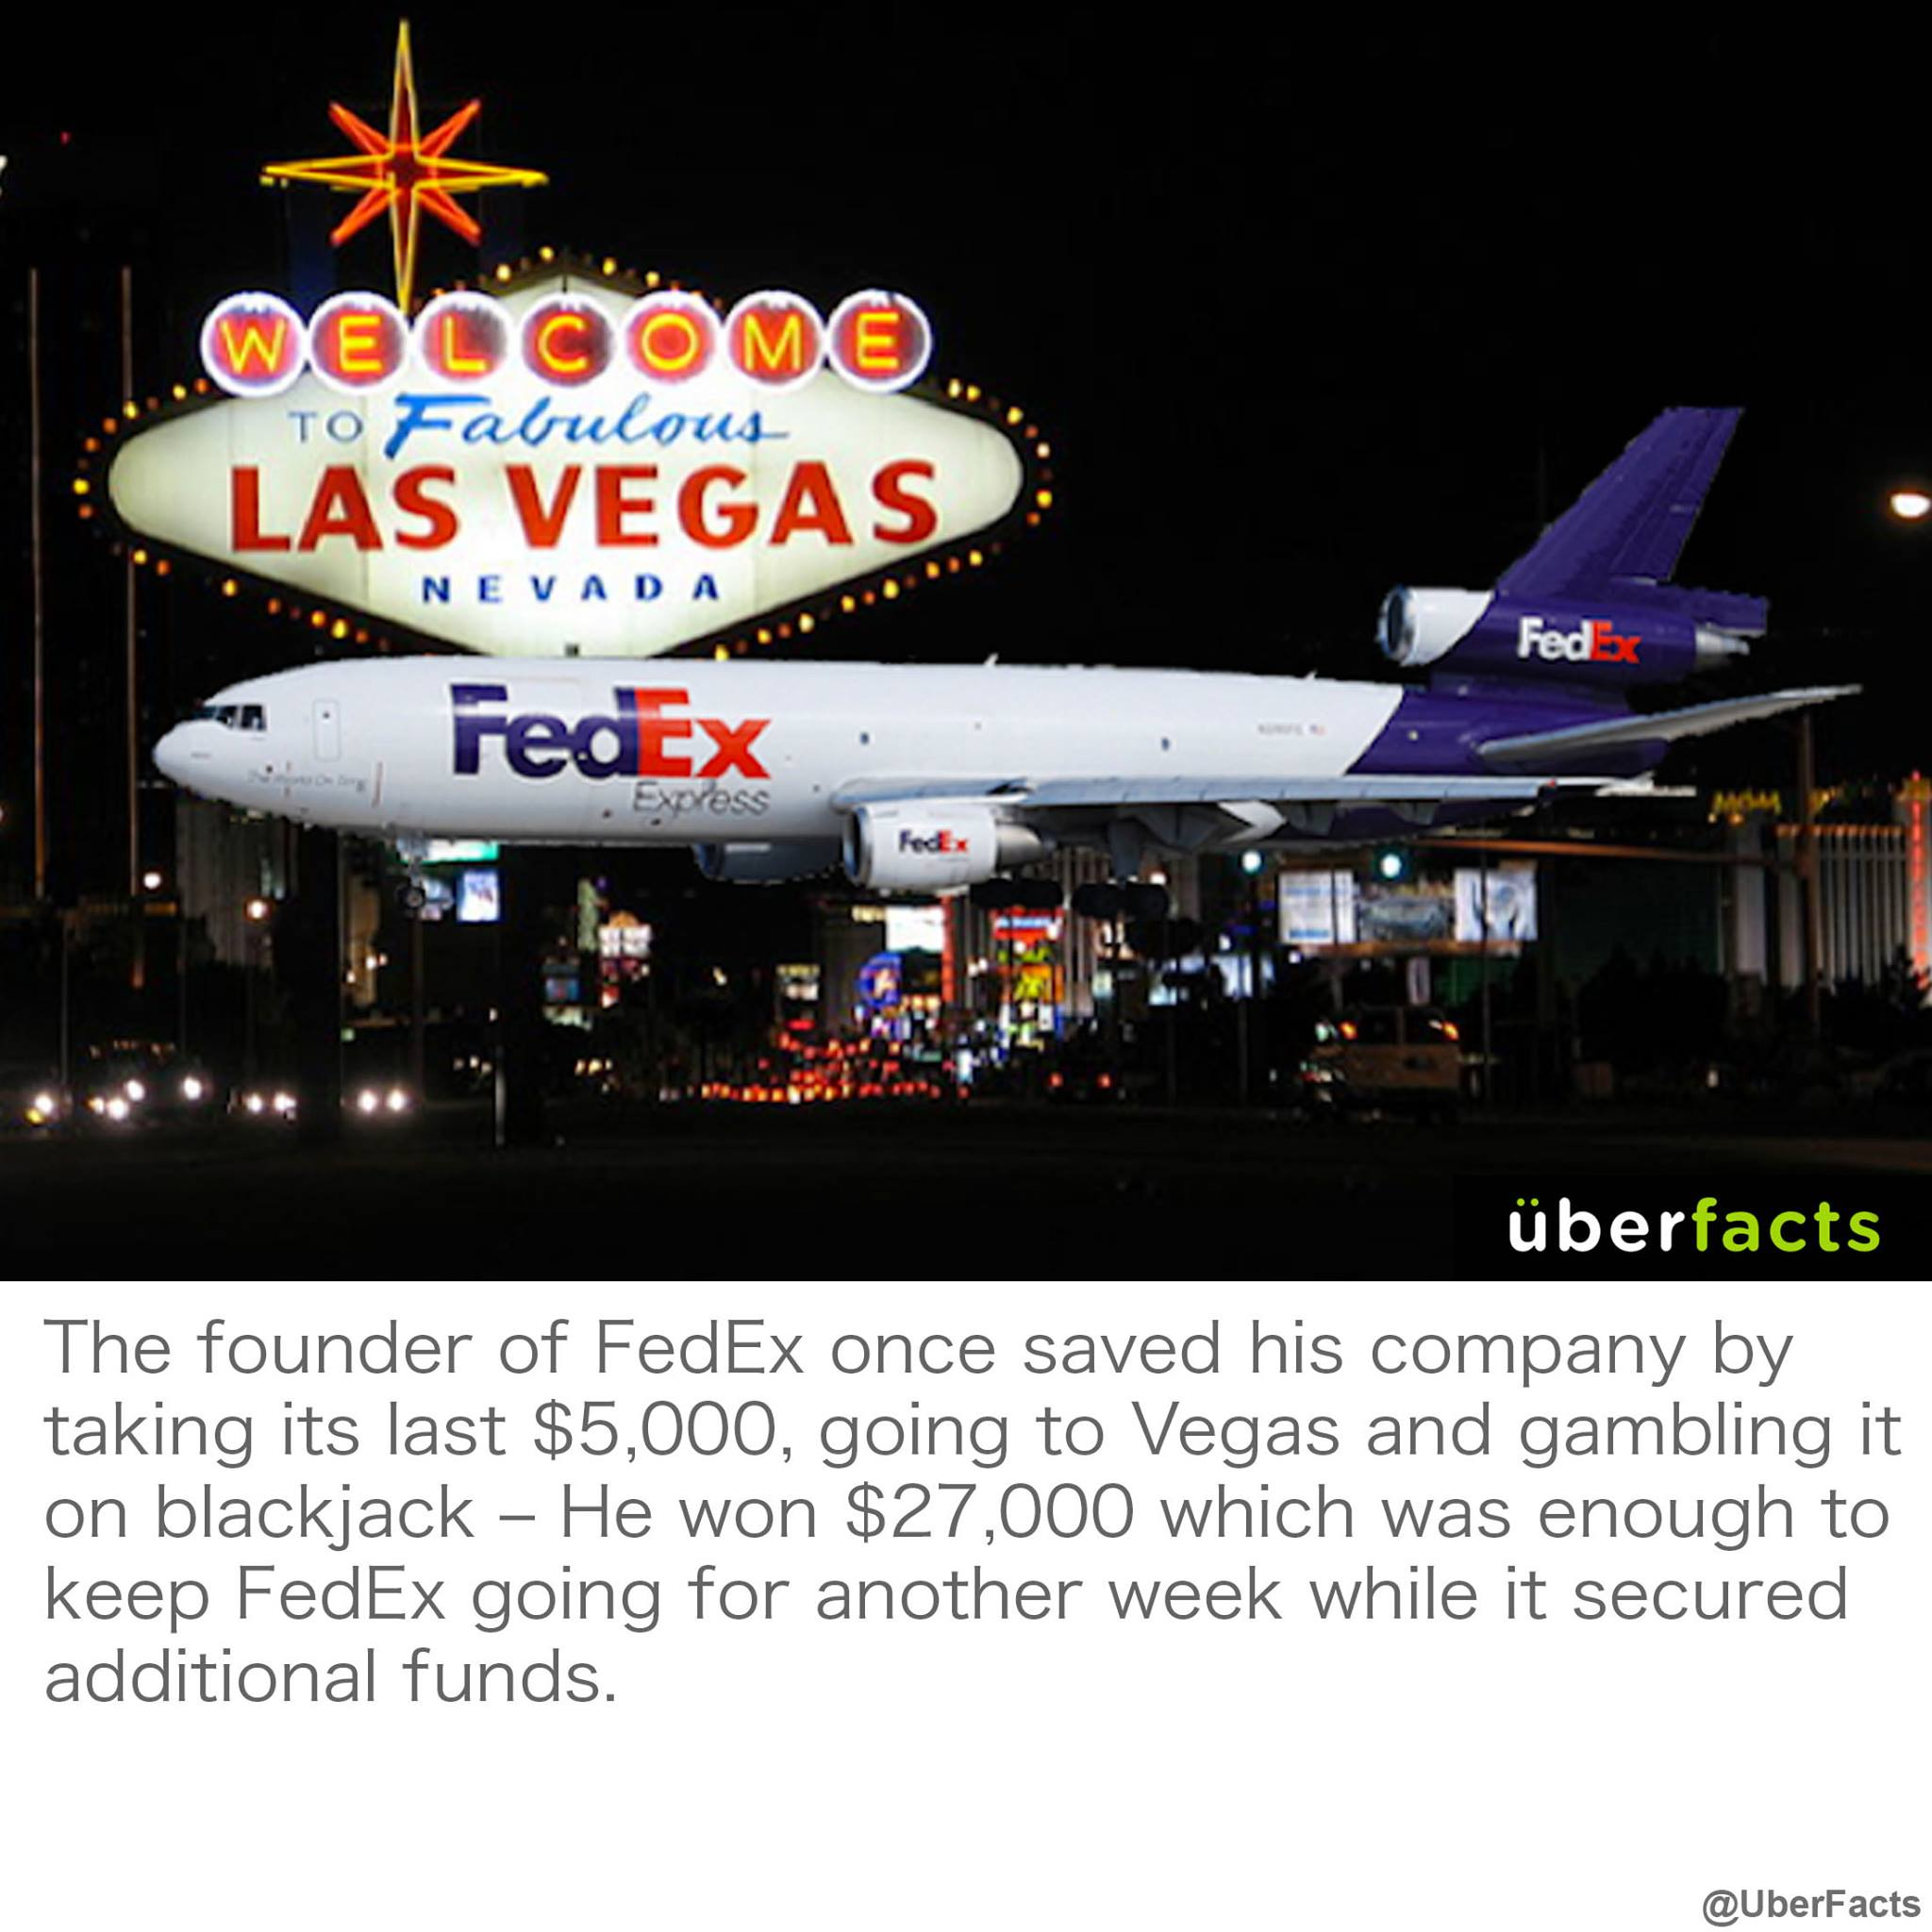 the founder of fed ex once saved his company by taking its last $5000 going to las vegas and gambling it all on blackjack, he won $27000 which was enough to keep fedex going for another week while it secured additional funds, uberfact